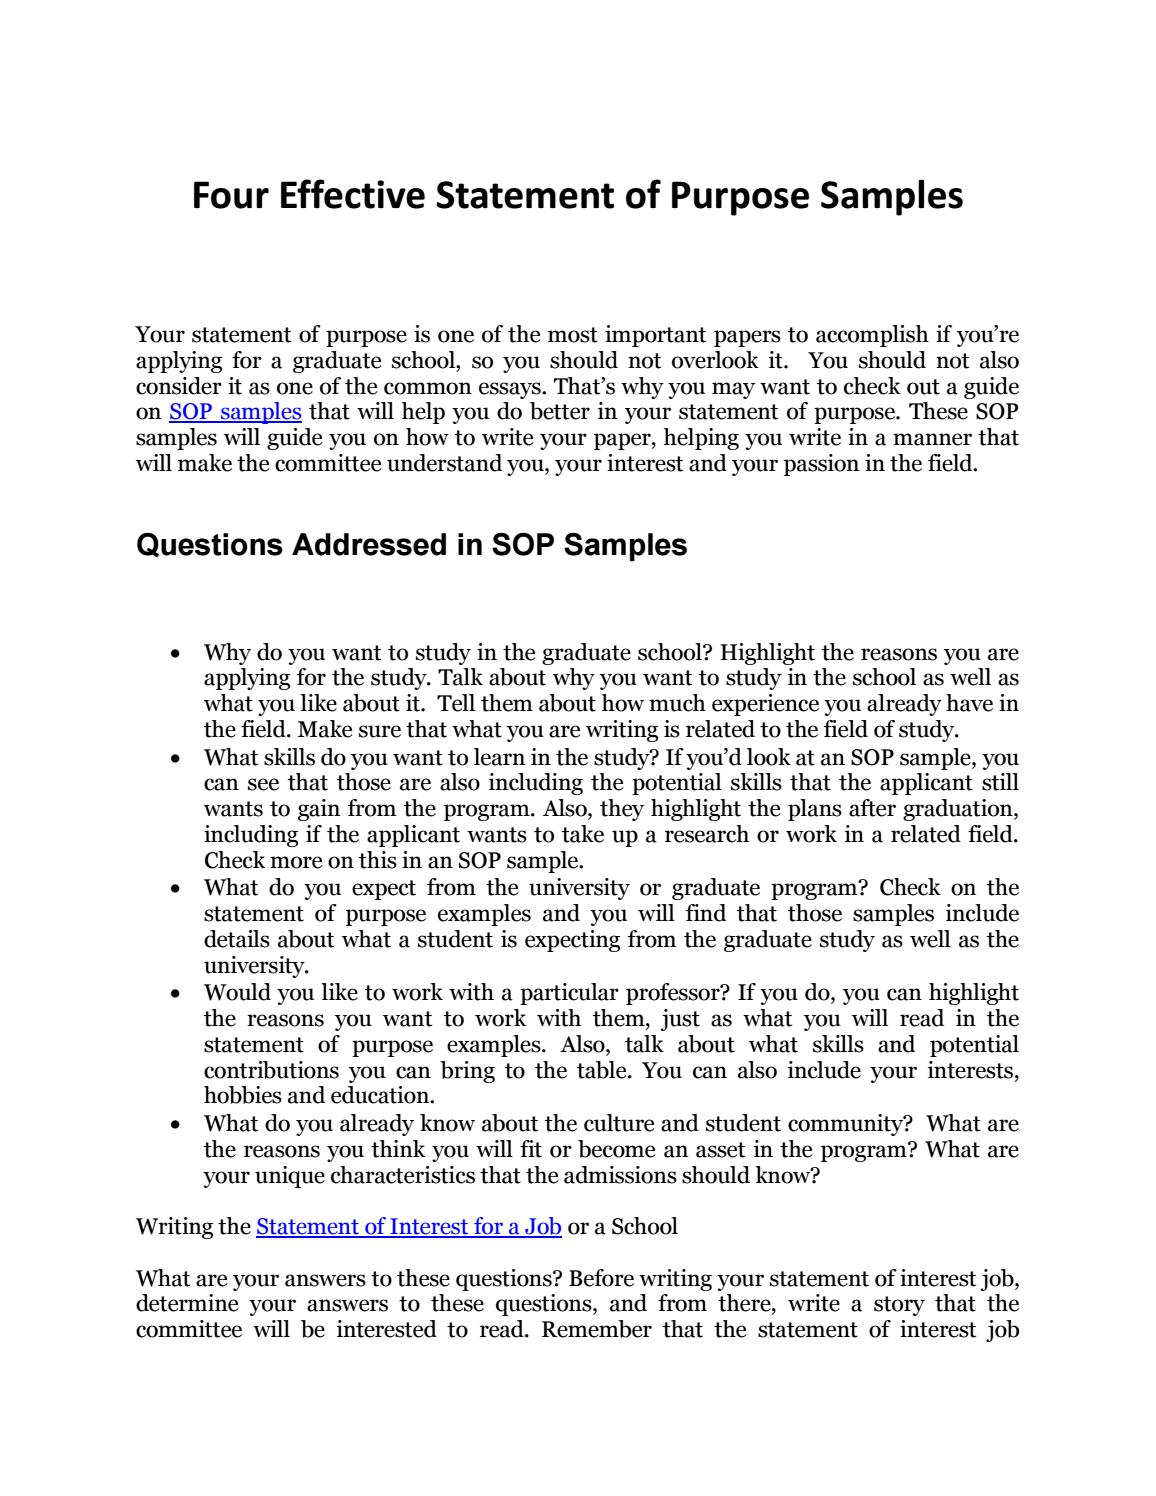 How to Write an Effective Personal Statement with SOP Samples by